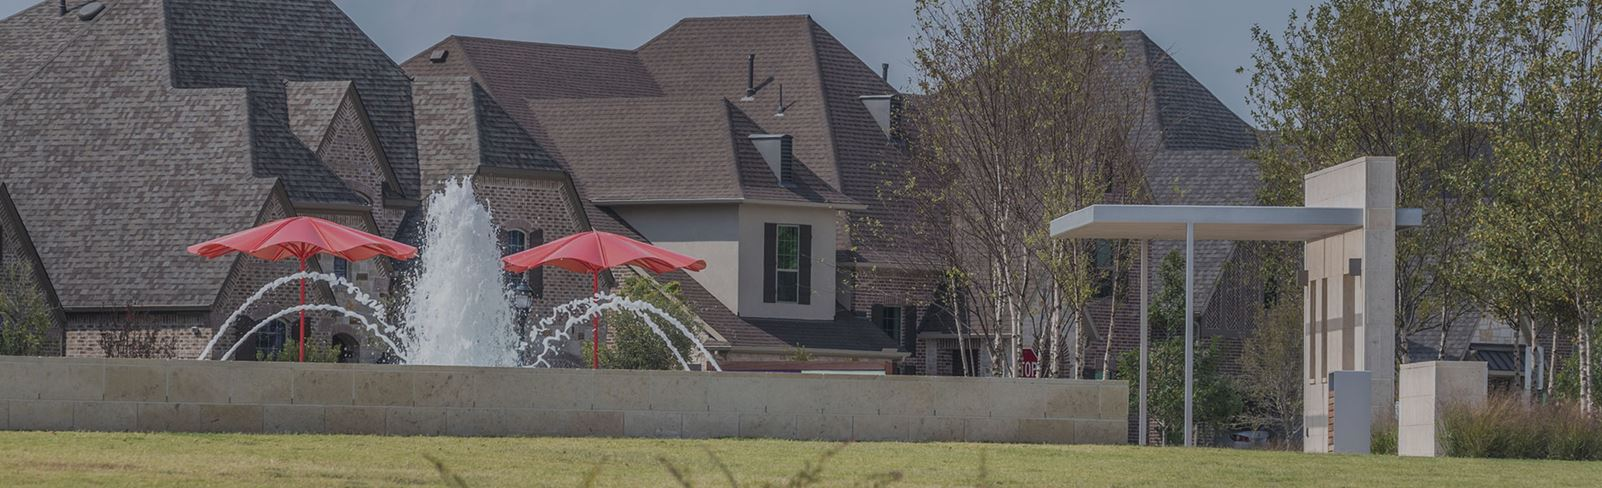 New Homes in Frisco Texas at Hollyhock community